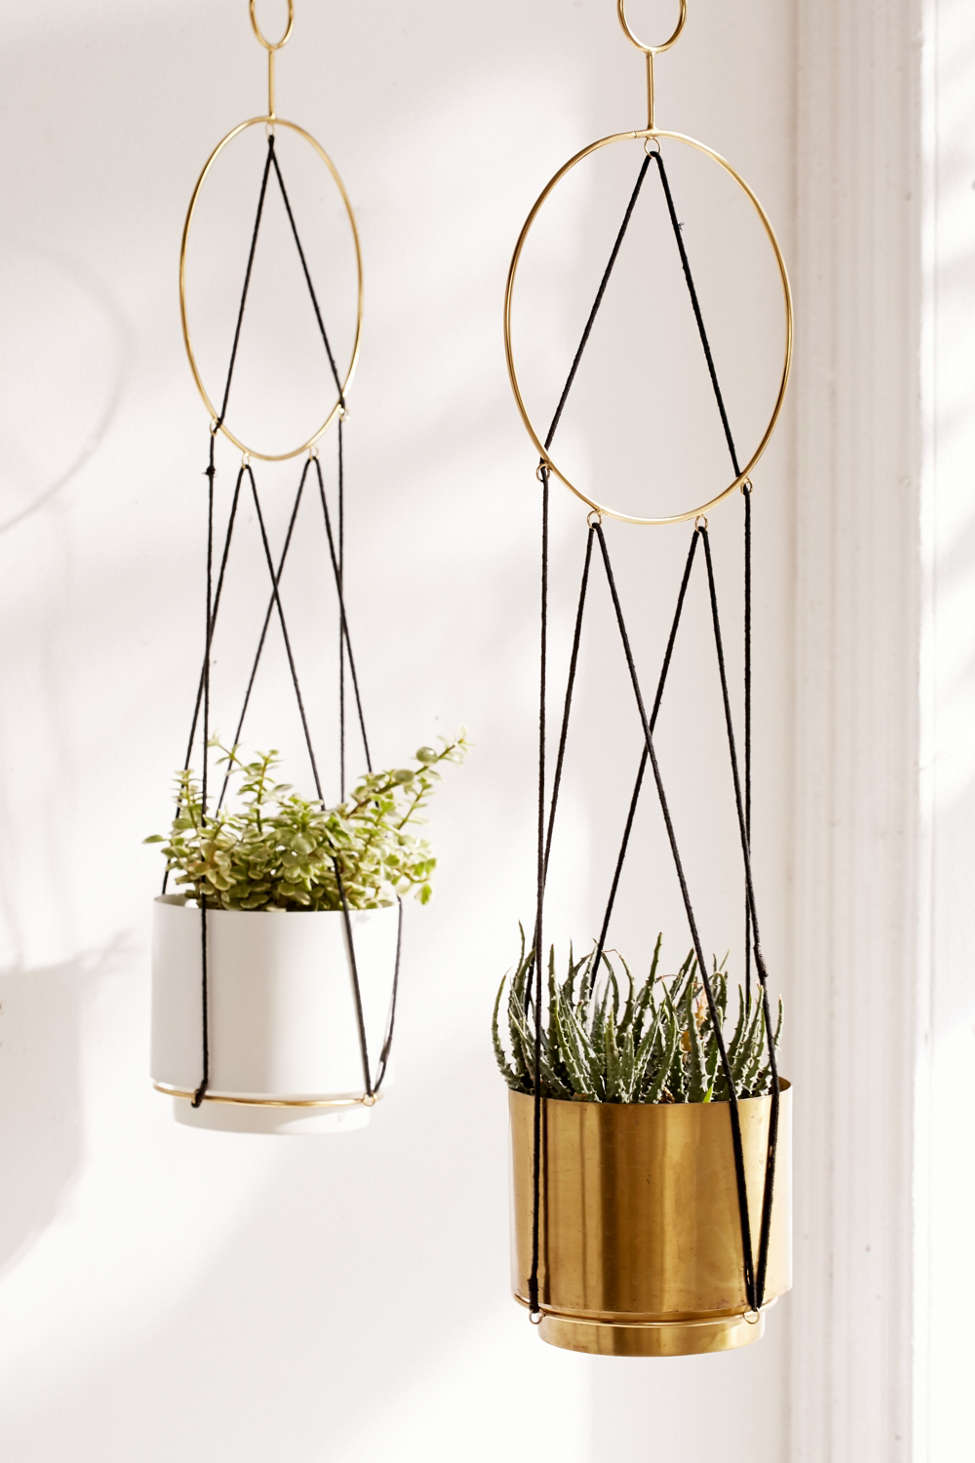 Slide View: 1: Triangle String Hanging Planter